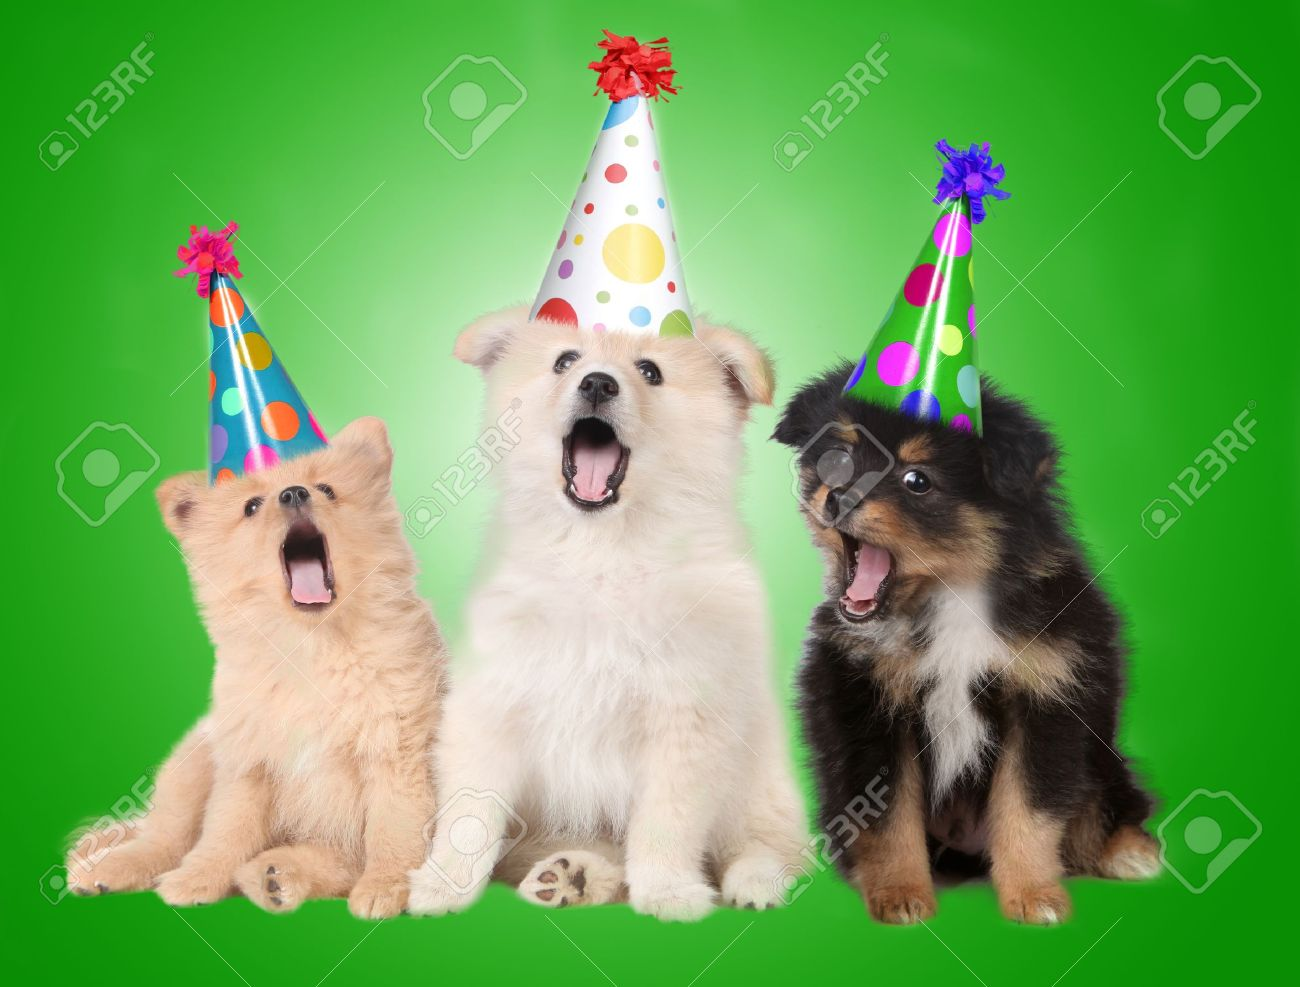 Funny Singing Birthday Celebrating Puppy Dogs Wearing Party Hats Stock Photo